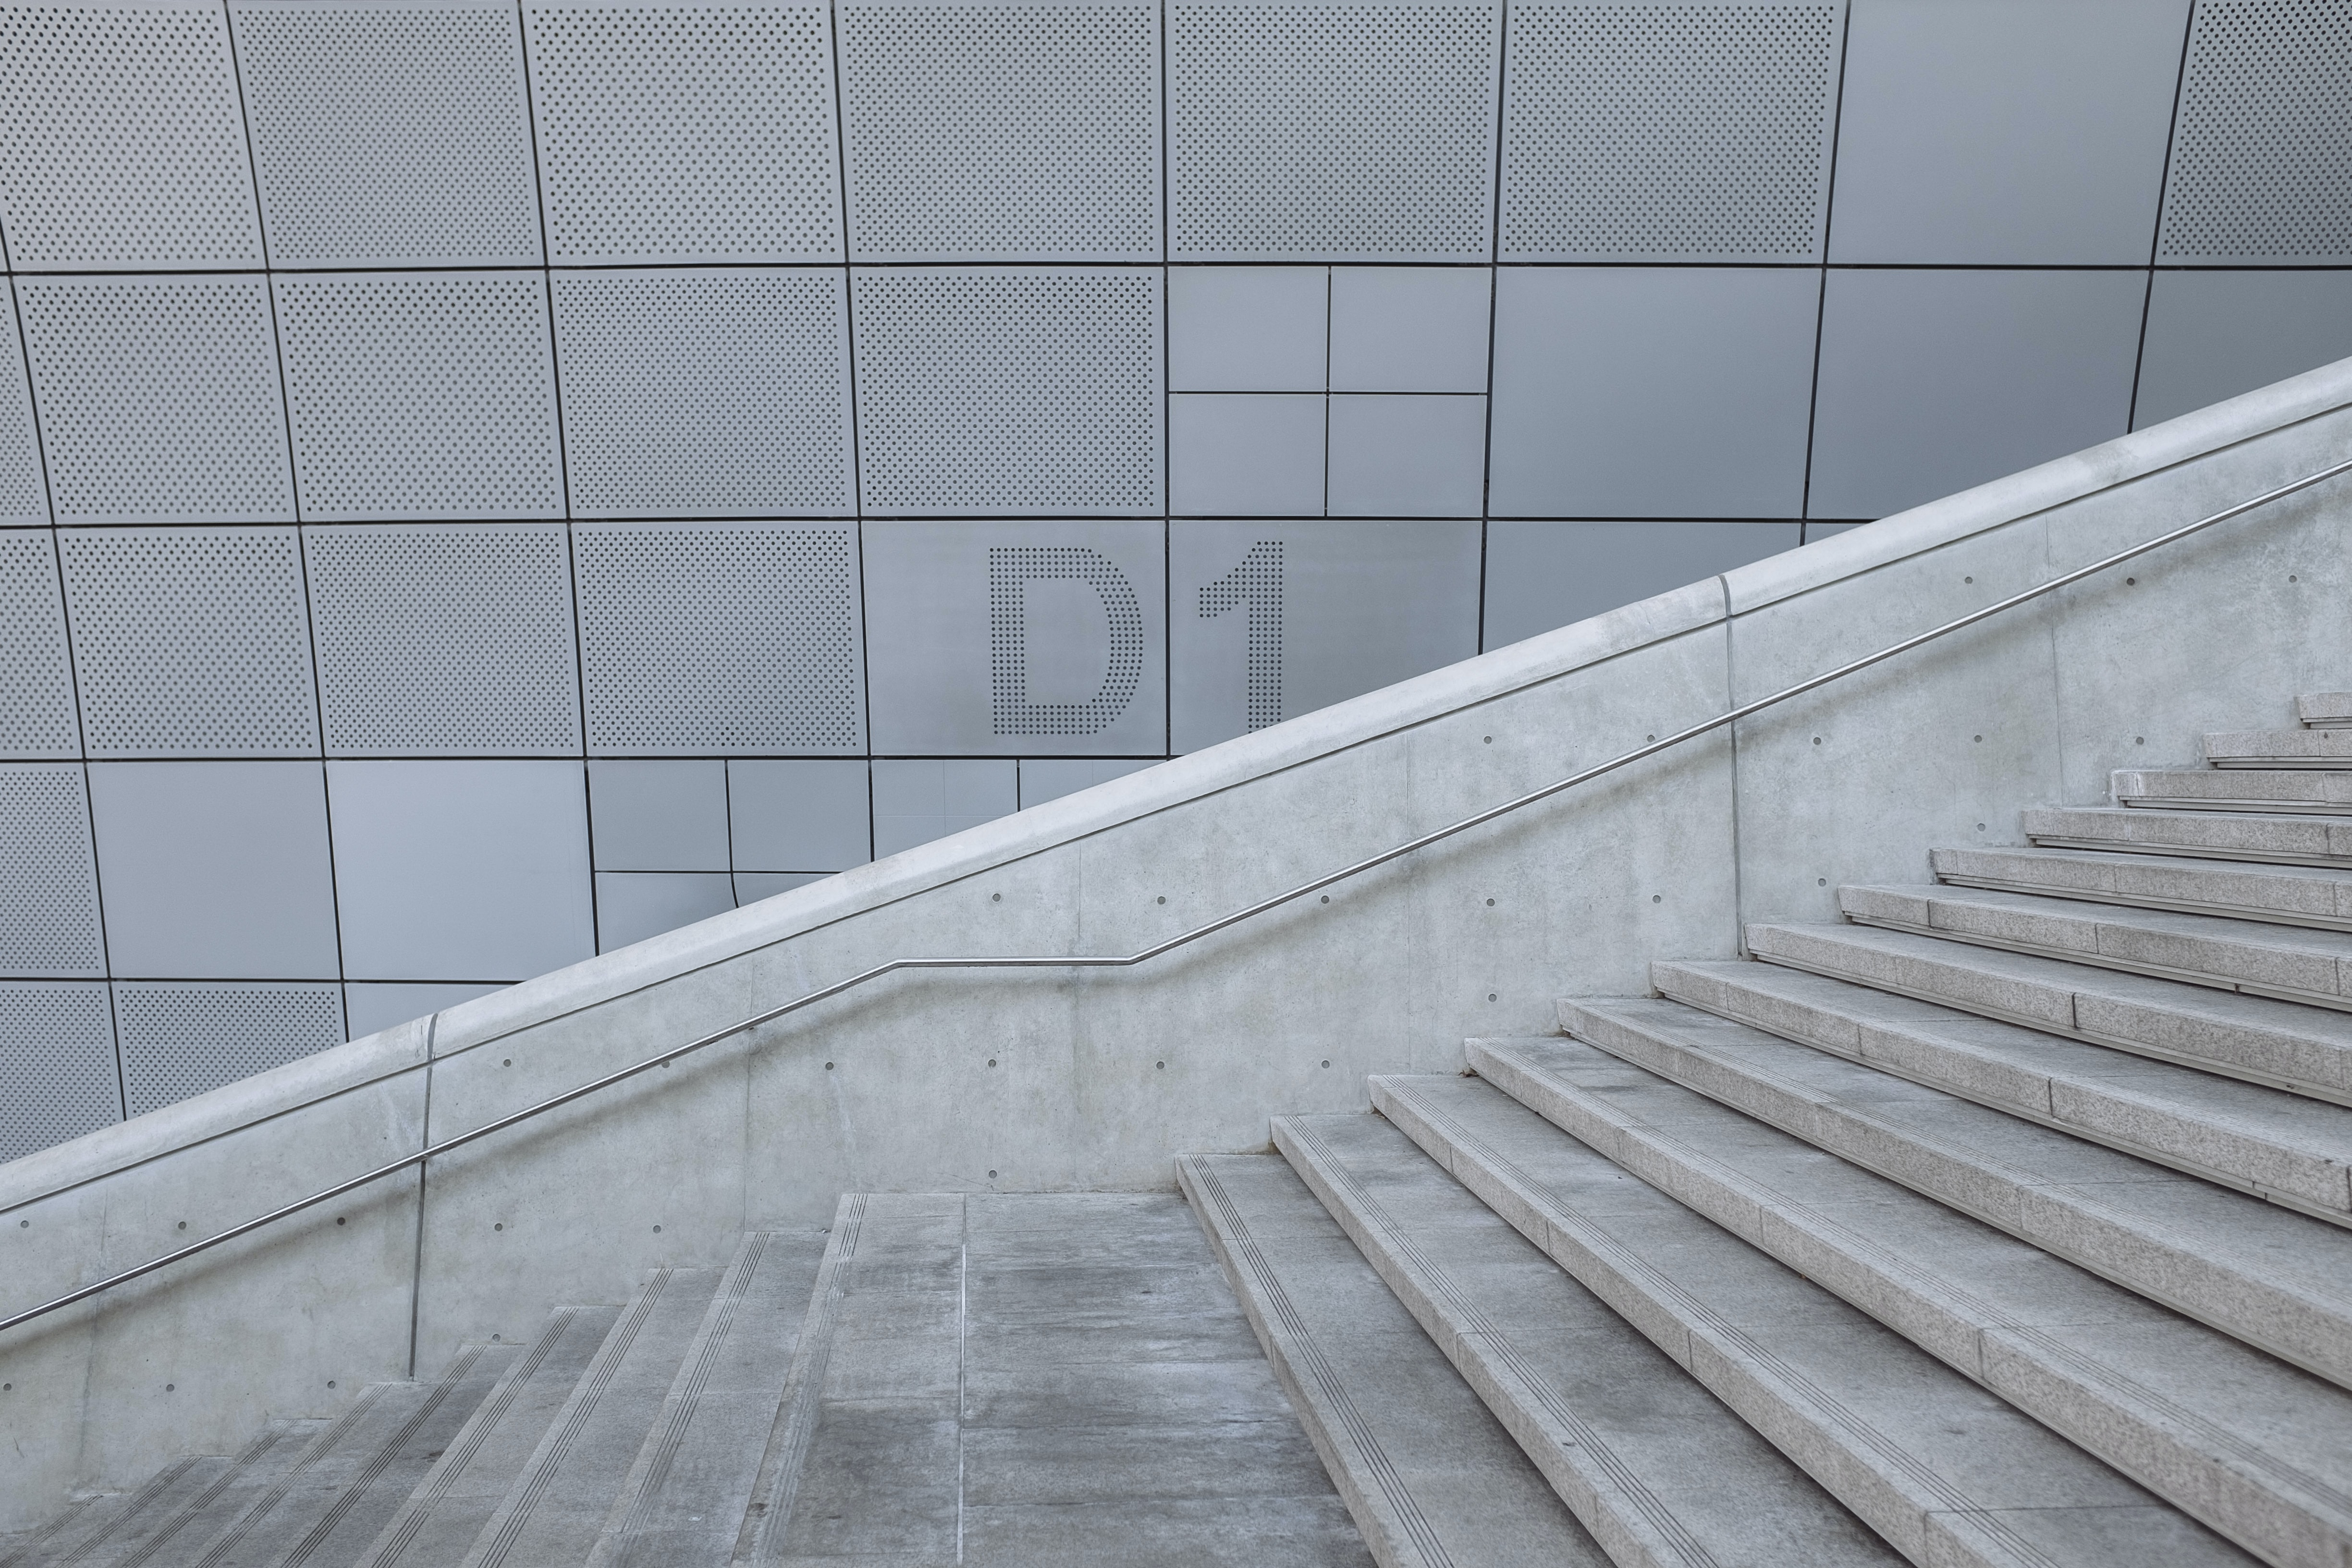 The concrete staircase at level D1 against the gray textured wall.